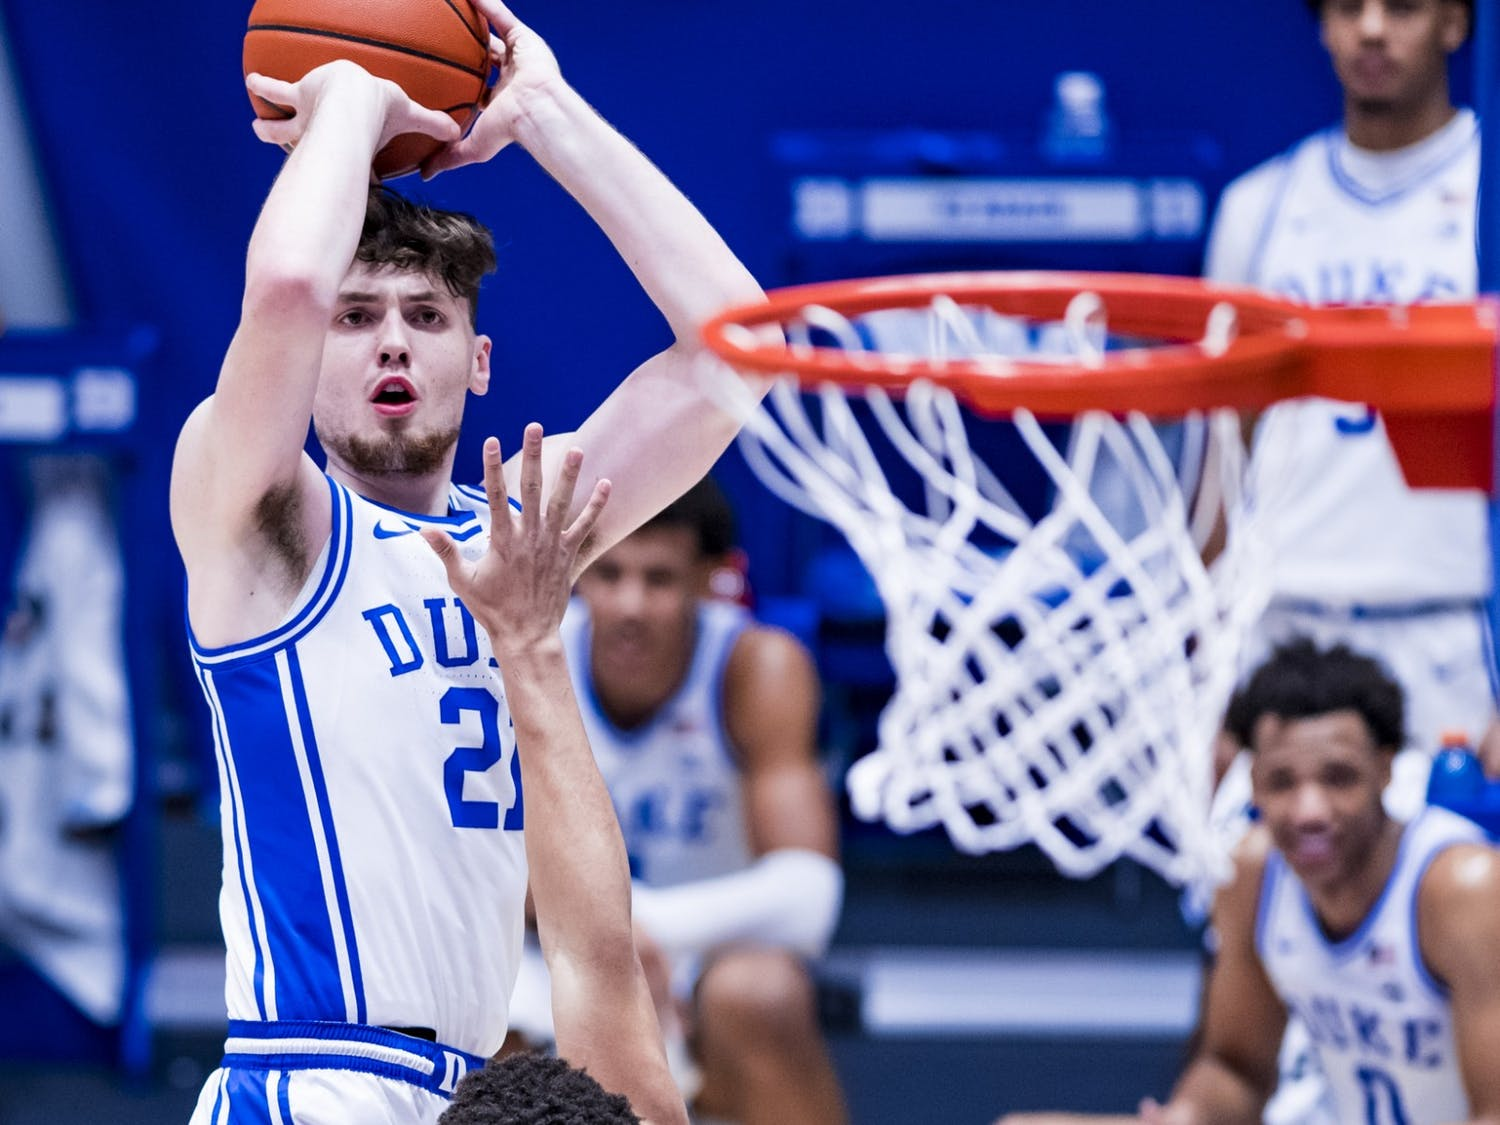 Led by Matthew Hurt's 13 points, the Blue Devils employed a balanced attack to blow out Clemson.